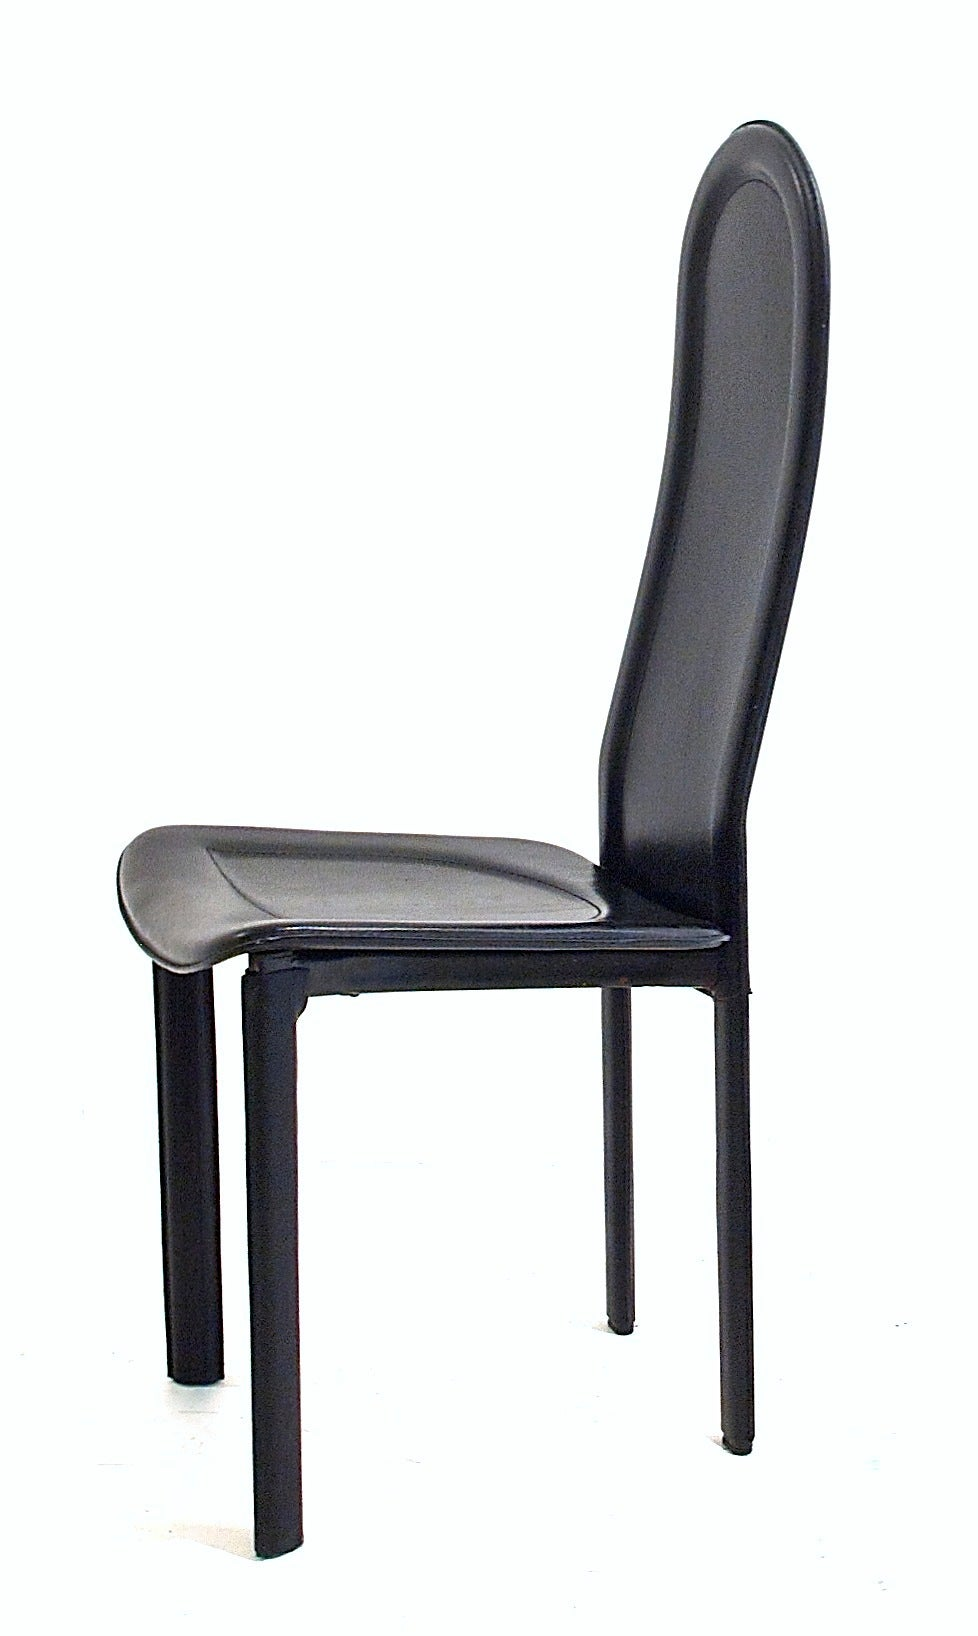 Black Leather Dining Chairs by Artedi UK For Sale at 1stdibs : ARTEDIleftside3 1 from www.1stdibs.com size 978 x 1636 jpeg 93kB